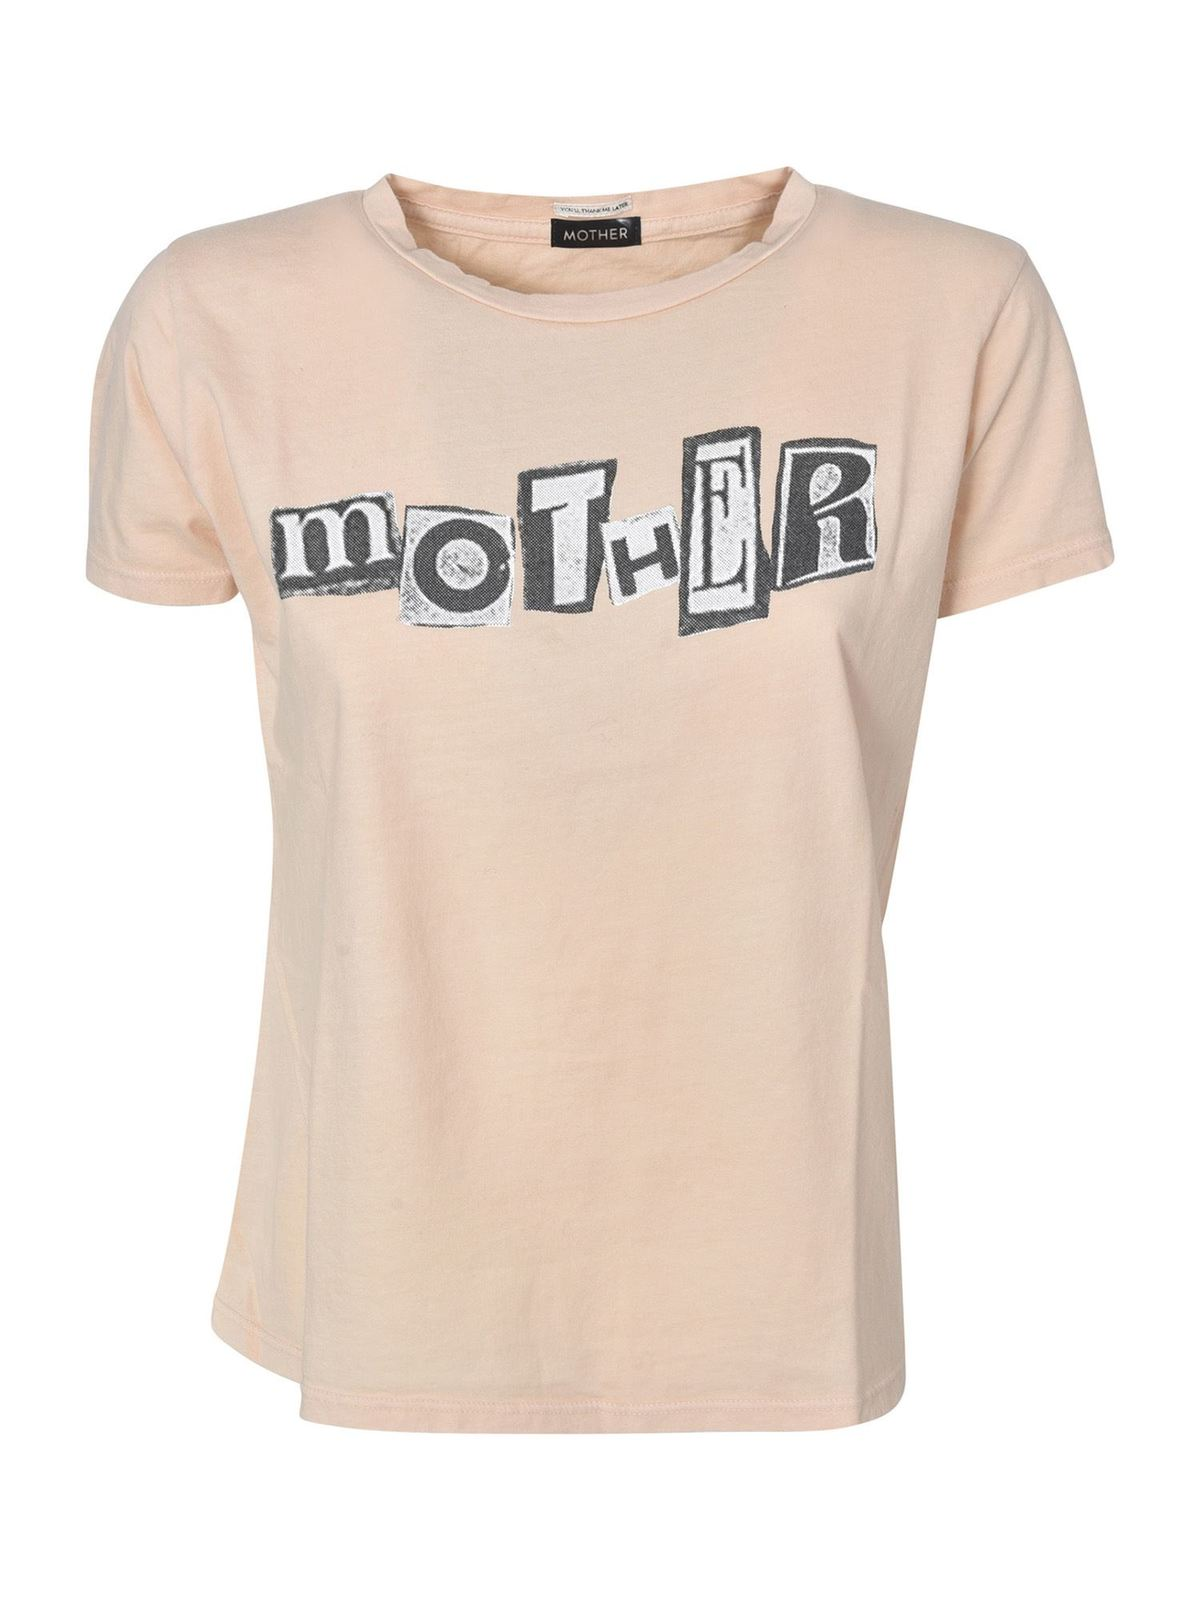 Mother ITTY BITTY GOODIE GOODIE T-SHIRT IN PINK